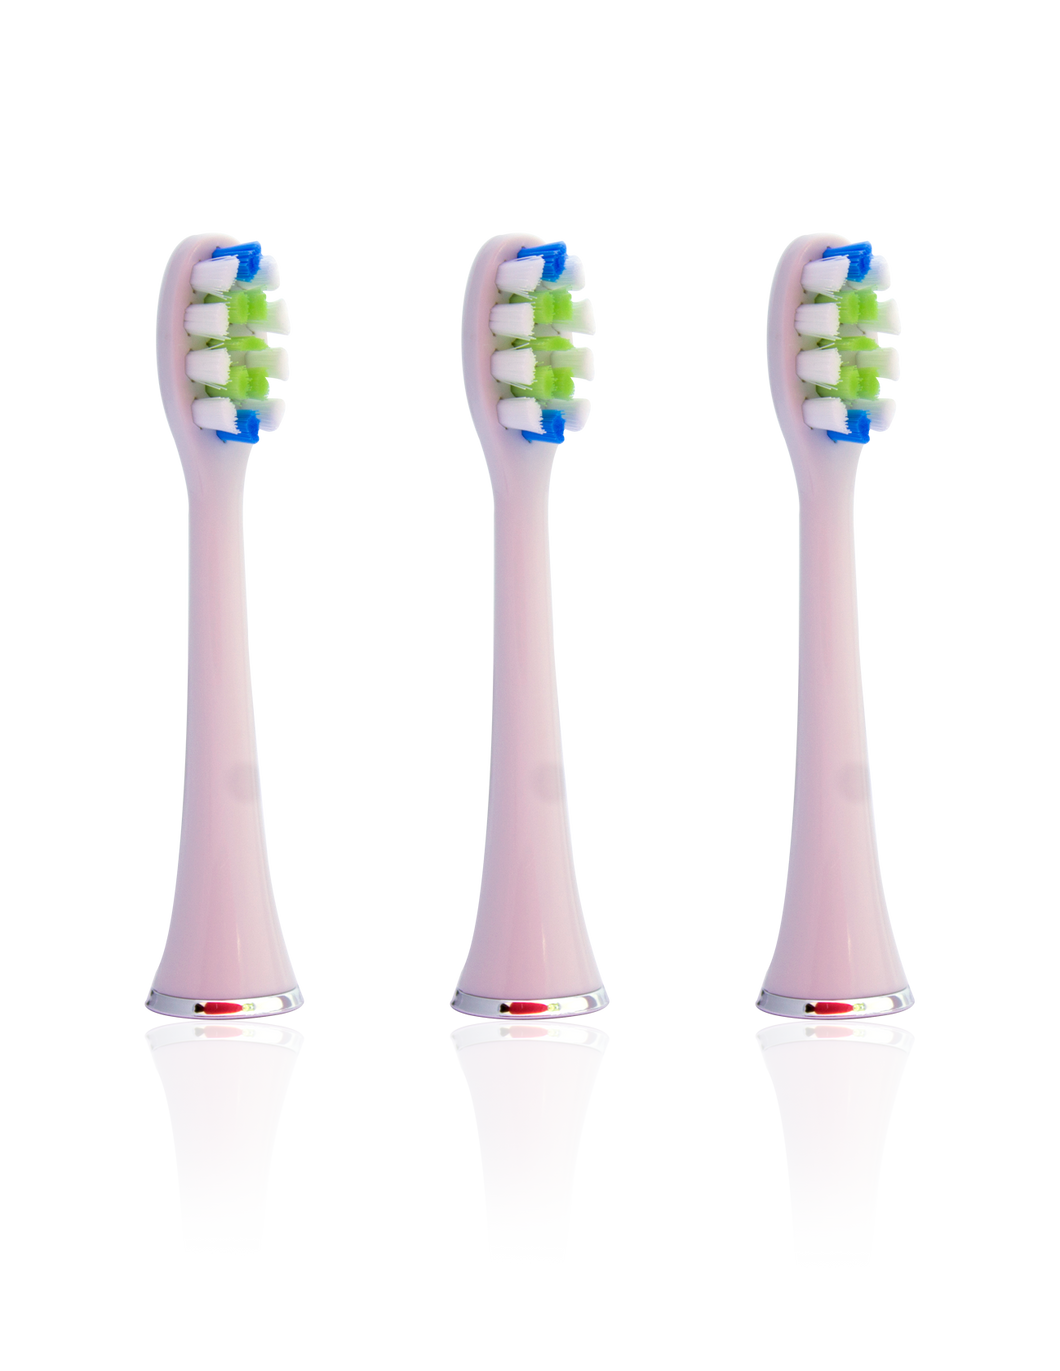 Soniclean Ultra Standard Replacement Brush Heads - Compatible with (Ultra, Philips Sonicare, Dentiguard Sonic)